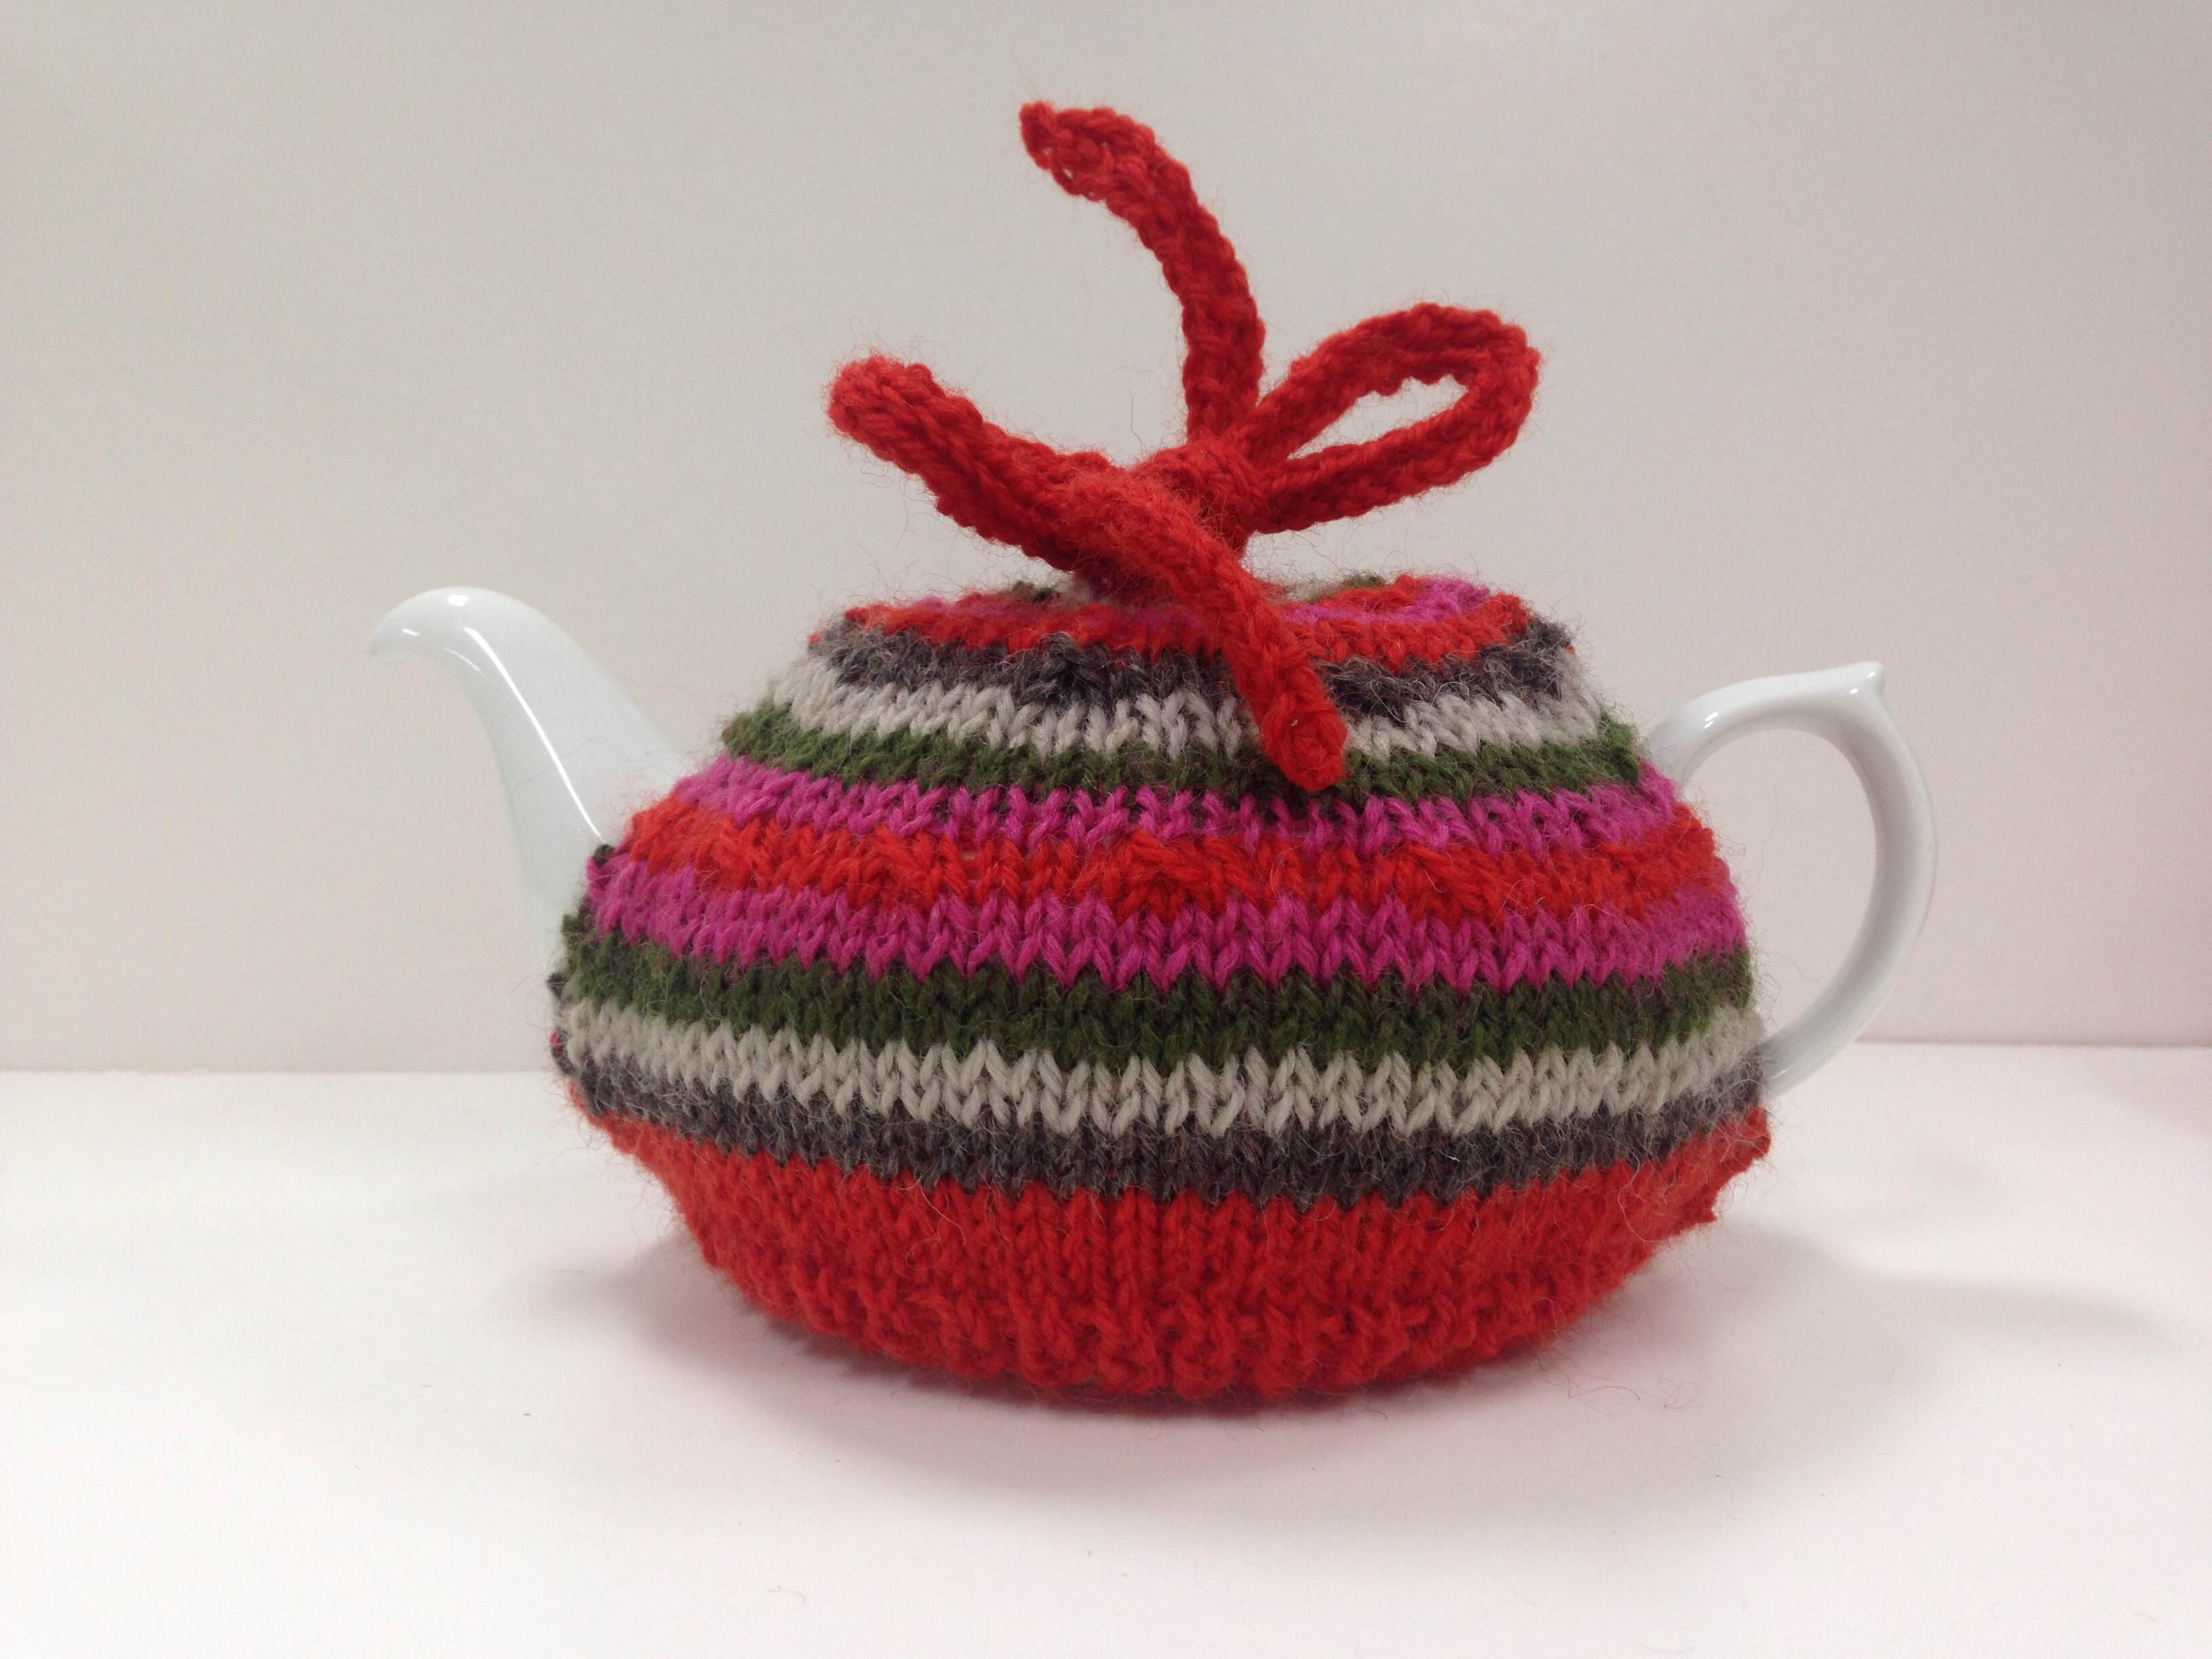 Tea Cosy Patterns To Knit Get Cosy Free Tea Cosy Pattern Lincraft Lincraft